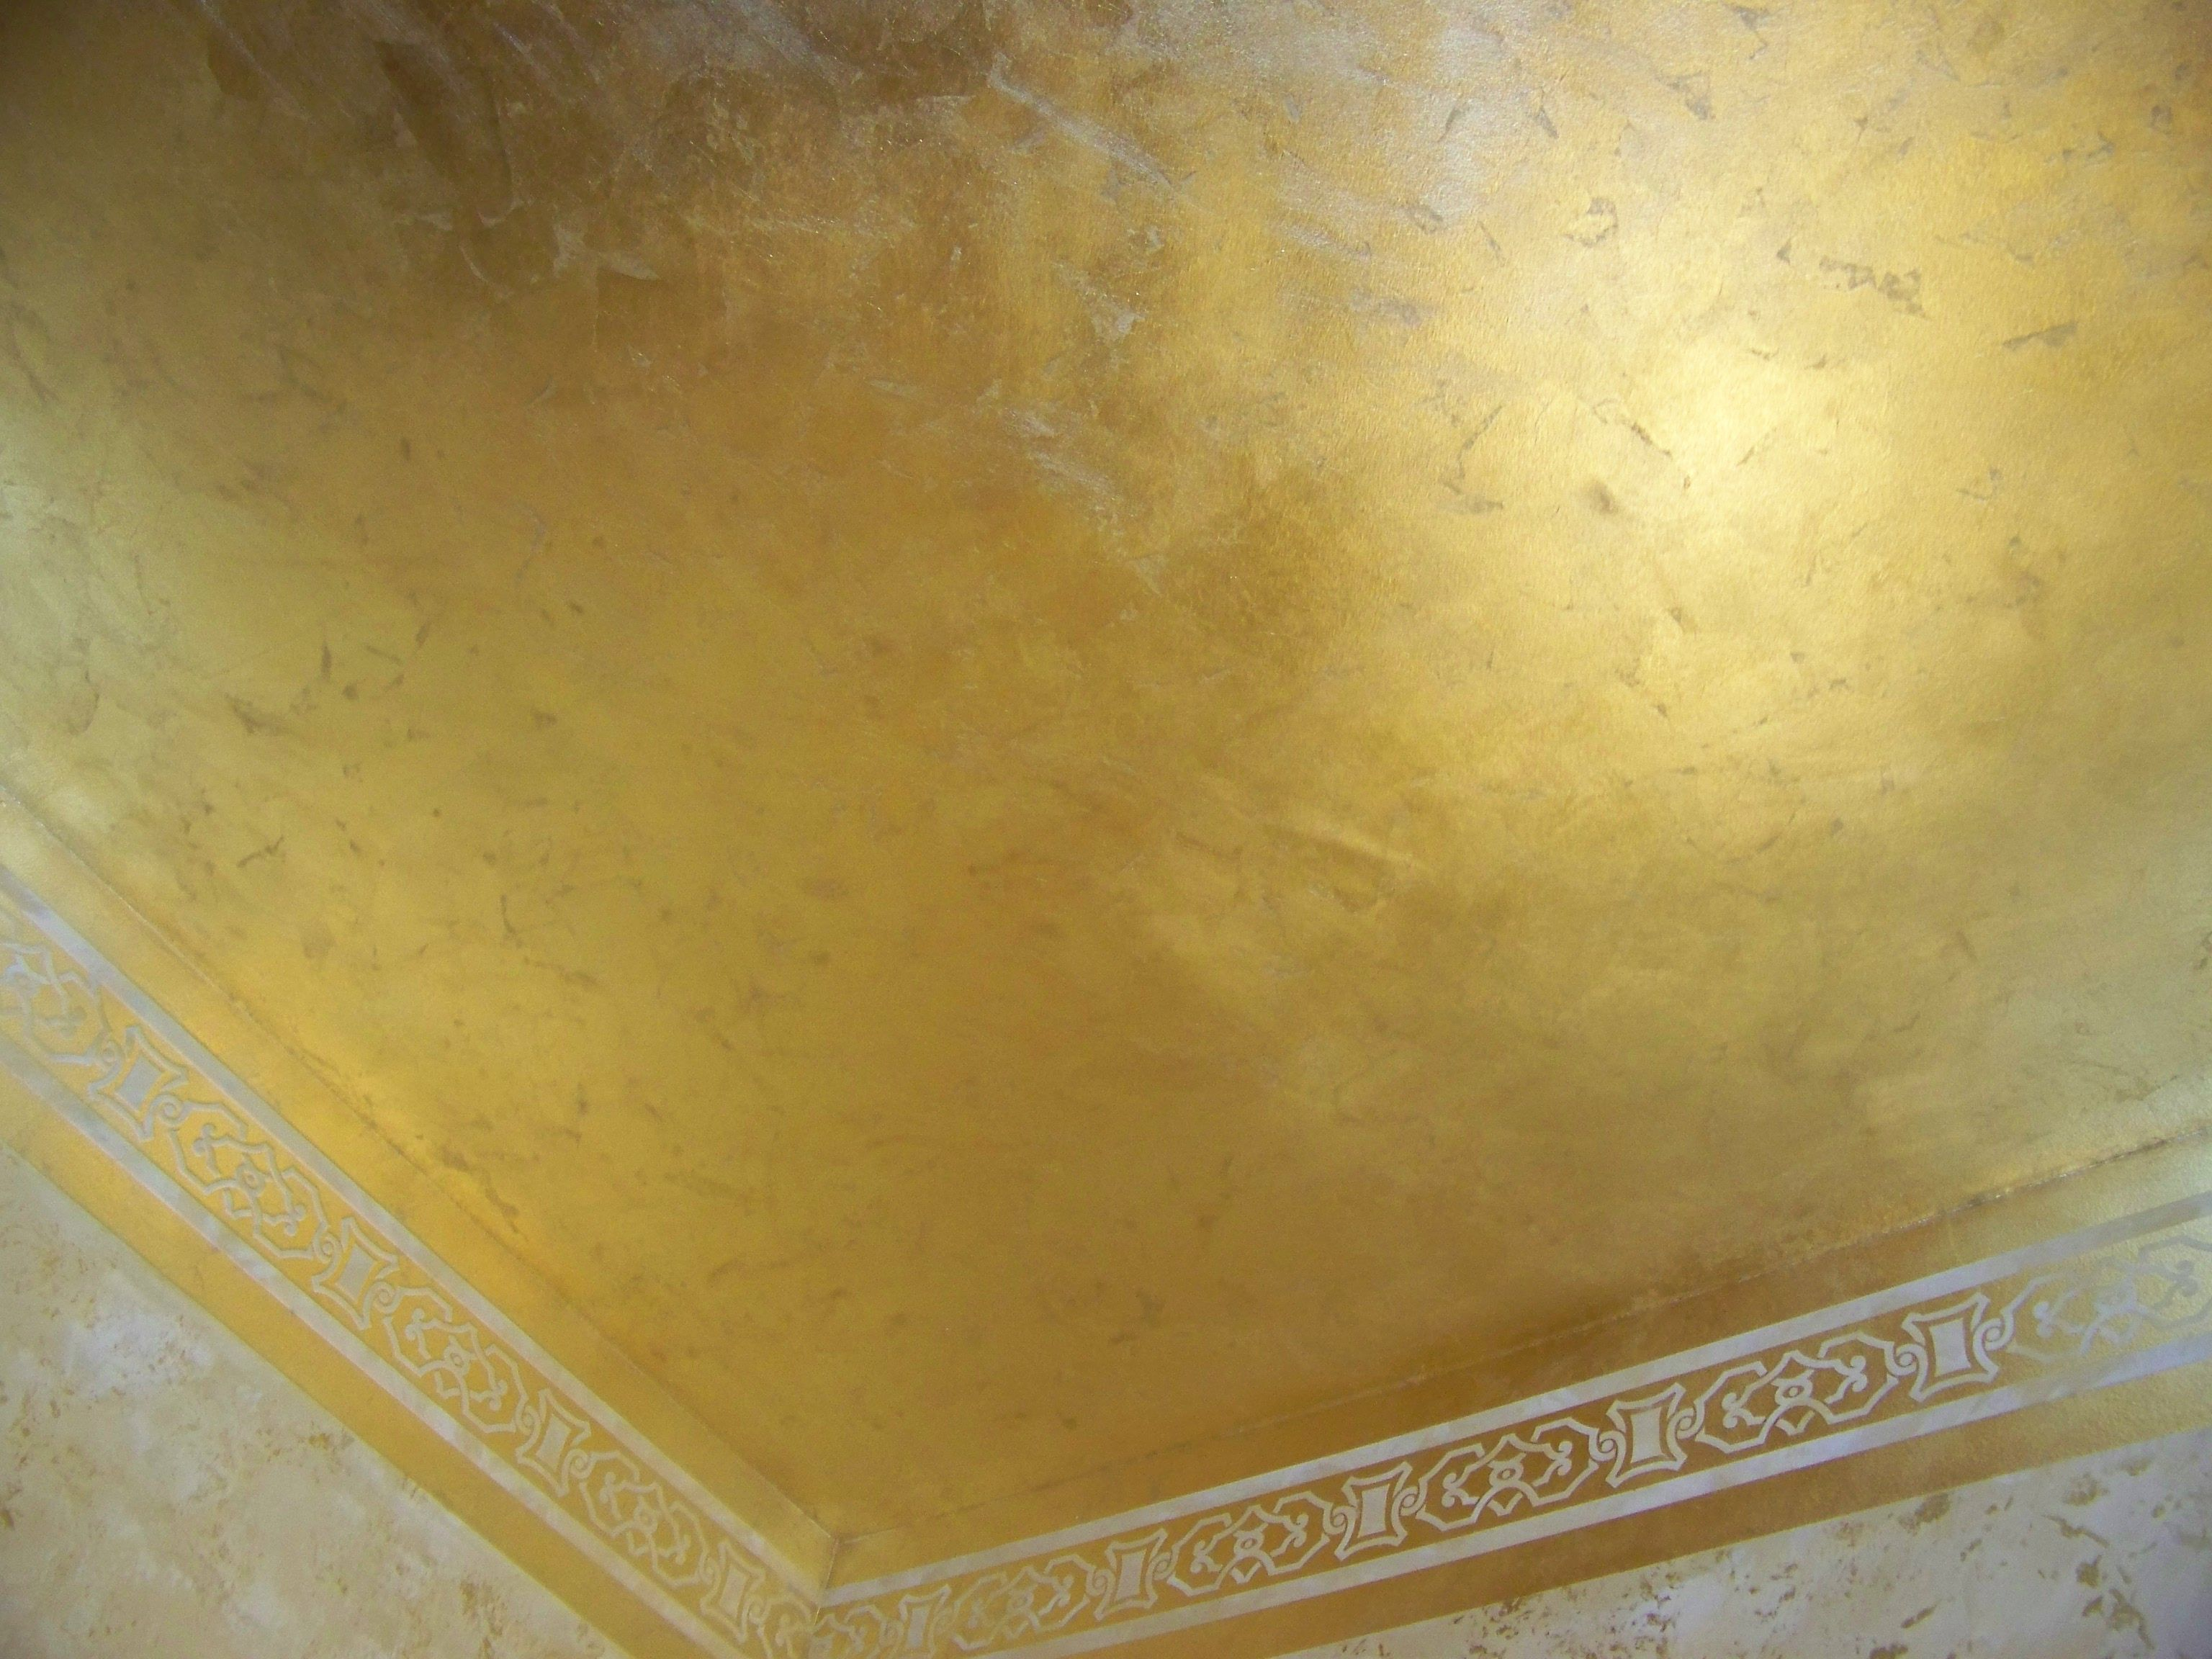 Multilayer Plaster Ceiling Finished in Schaibin Gold Flakes ...